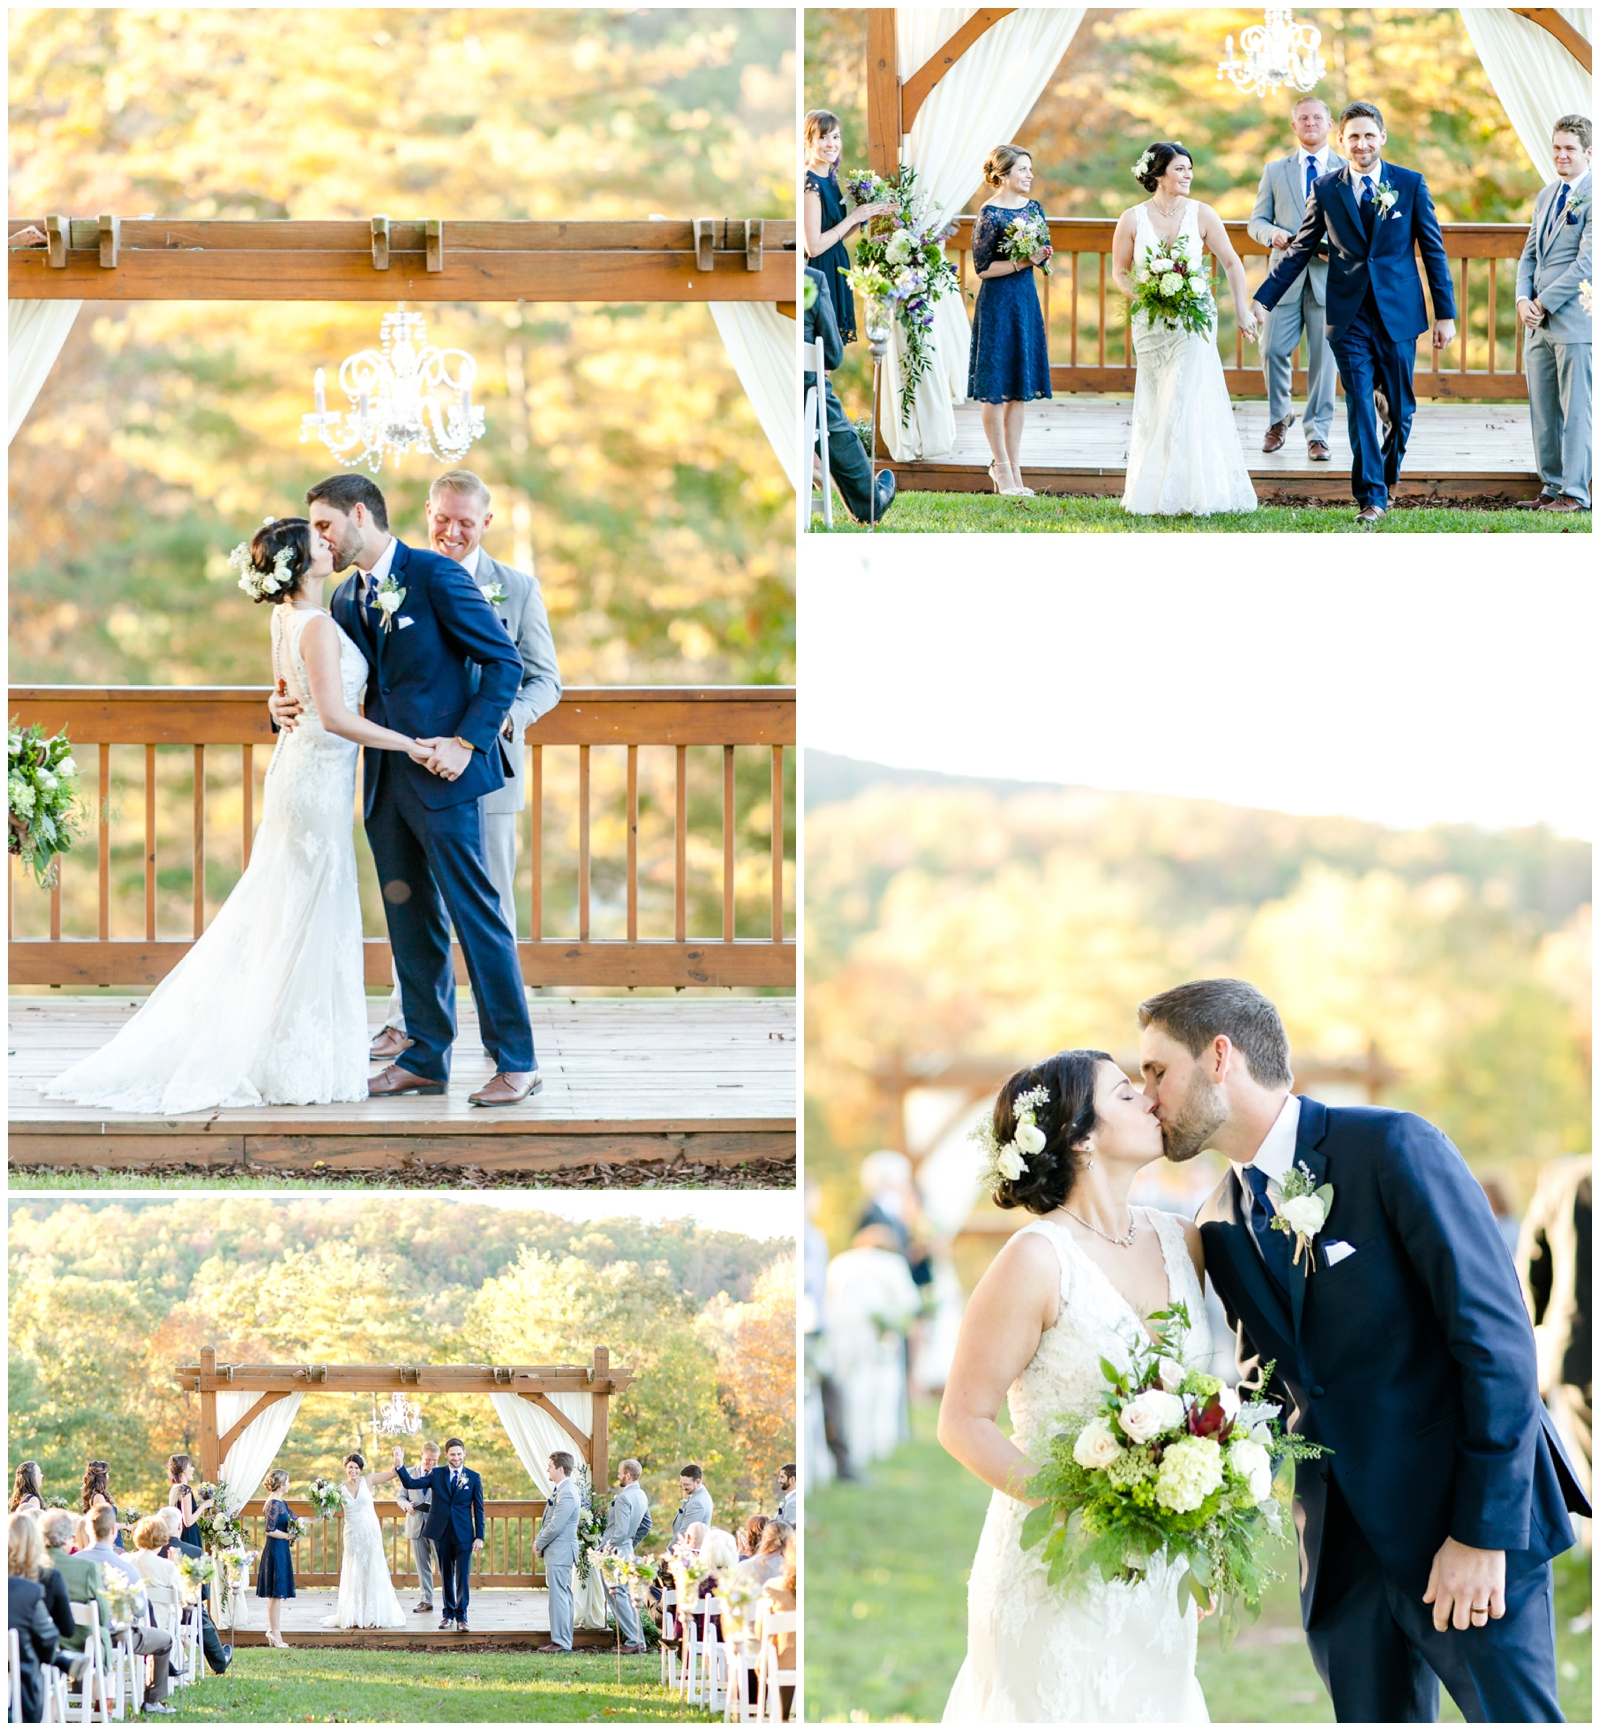 R&G_AtlantaWeddingPhotographer_WhiteOaksBarn_0030